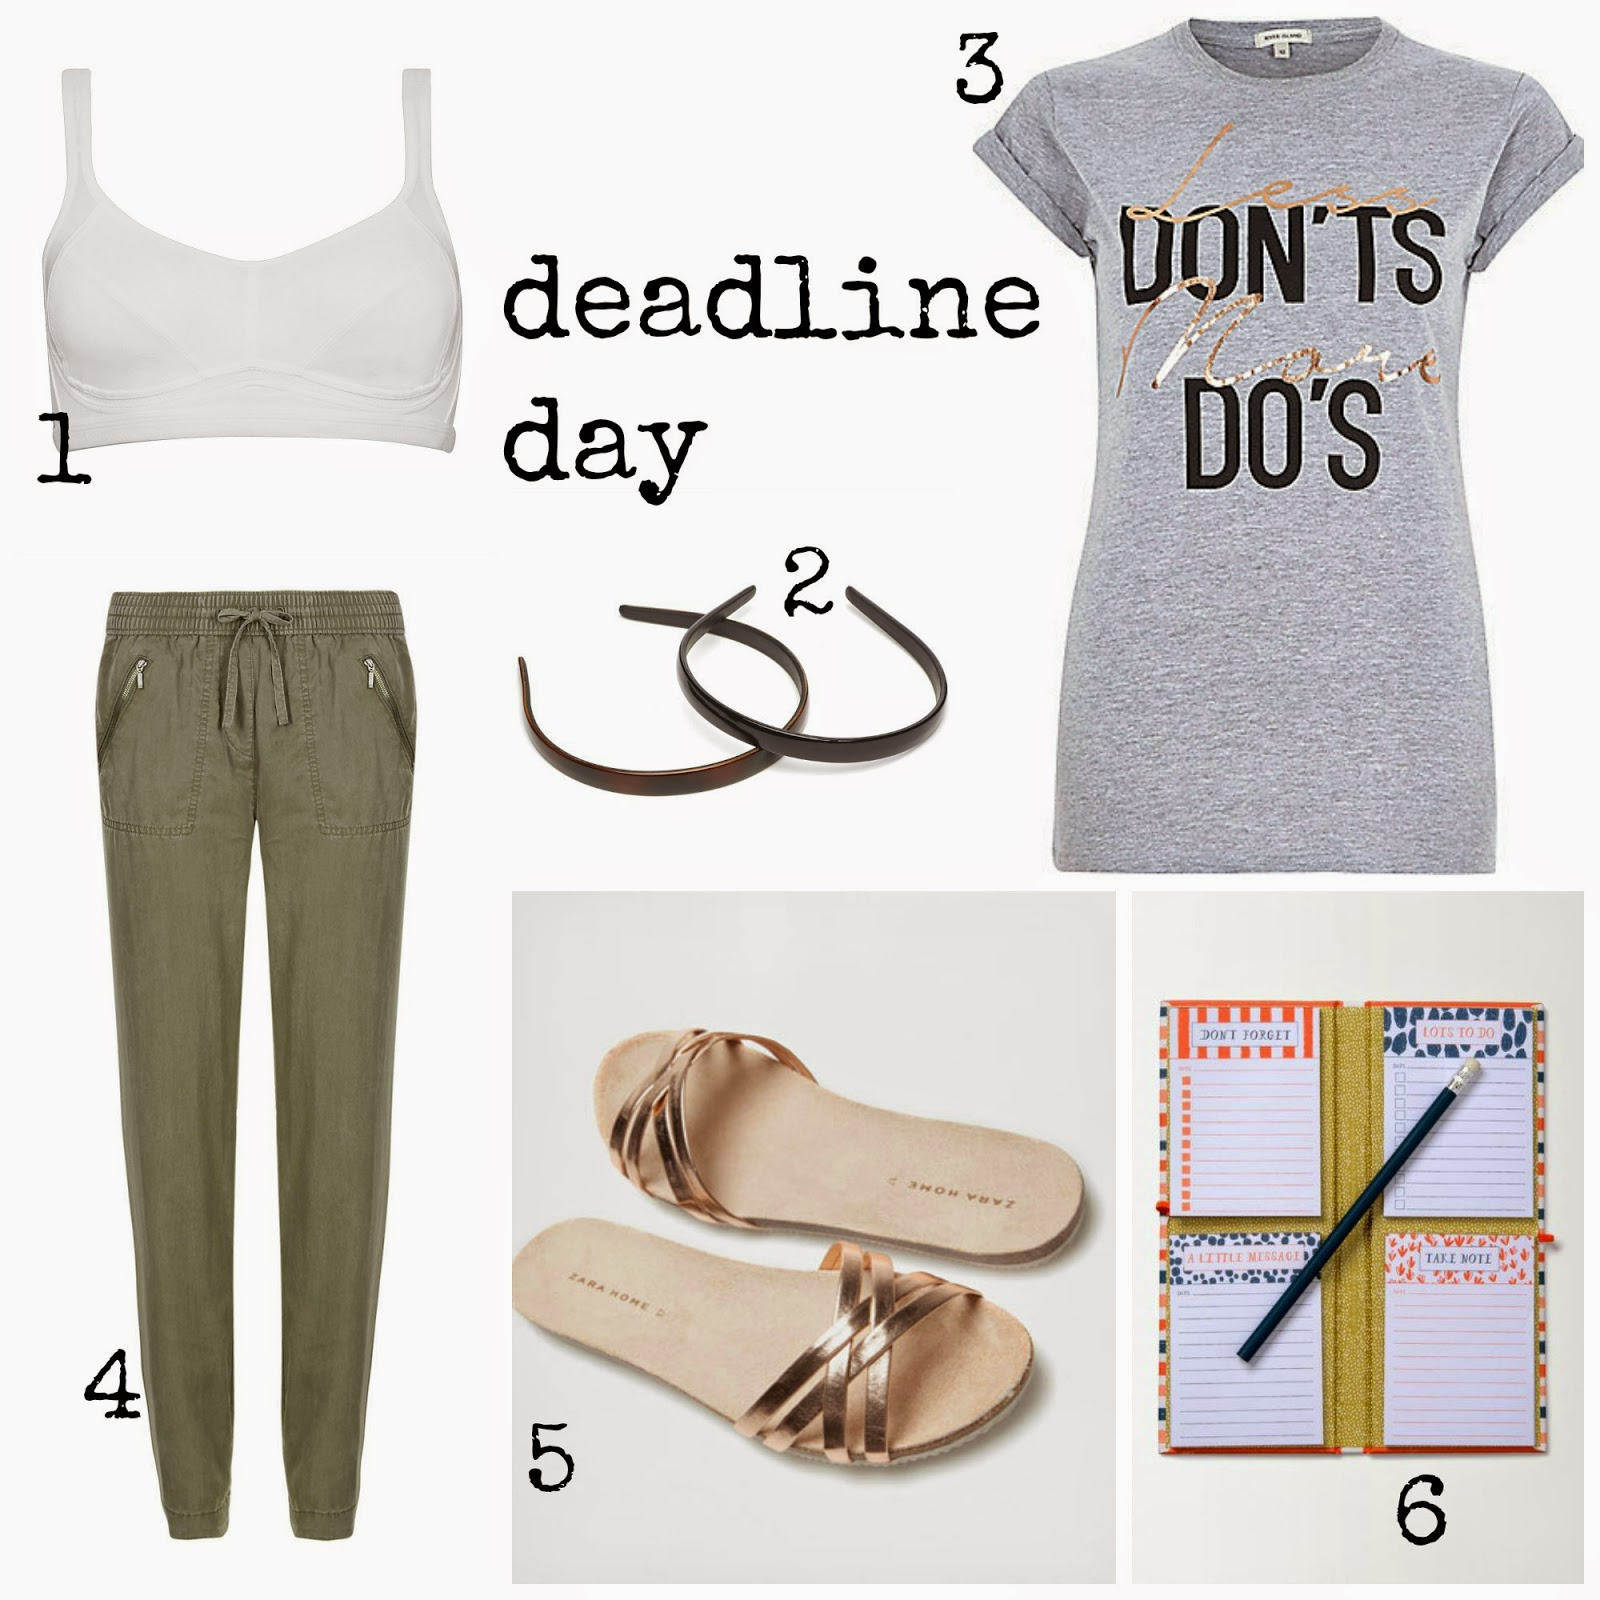 mamasVIB | V. I. BABYMAMAS: Working from home - 5 Stylish looks that mean Business | working from home clothes | freelance clothes | causal clothes | working from home | desk | stylish looks for work | marks and spcner | anthropoloigie | scunci | headband | cool looks | river island | to do notepad | mamasVIb | stylist | fashion editor | baby mamas | dress like a mu | comfy clothes | style | fashion | blogger | dressing for work